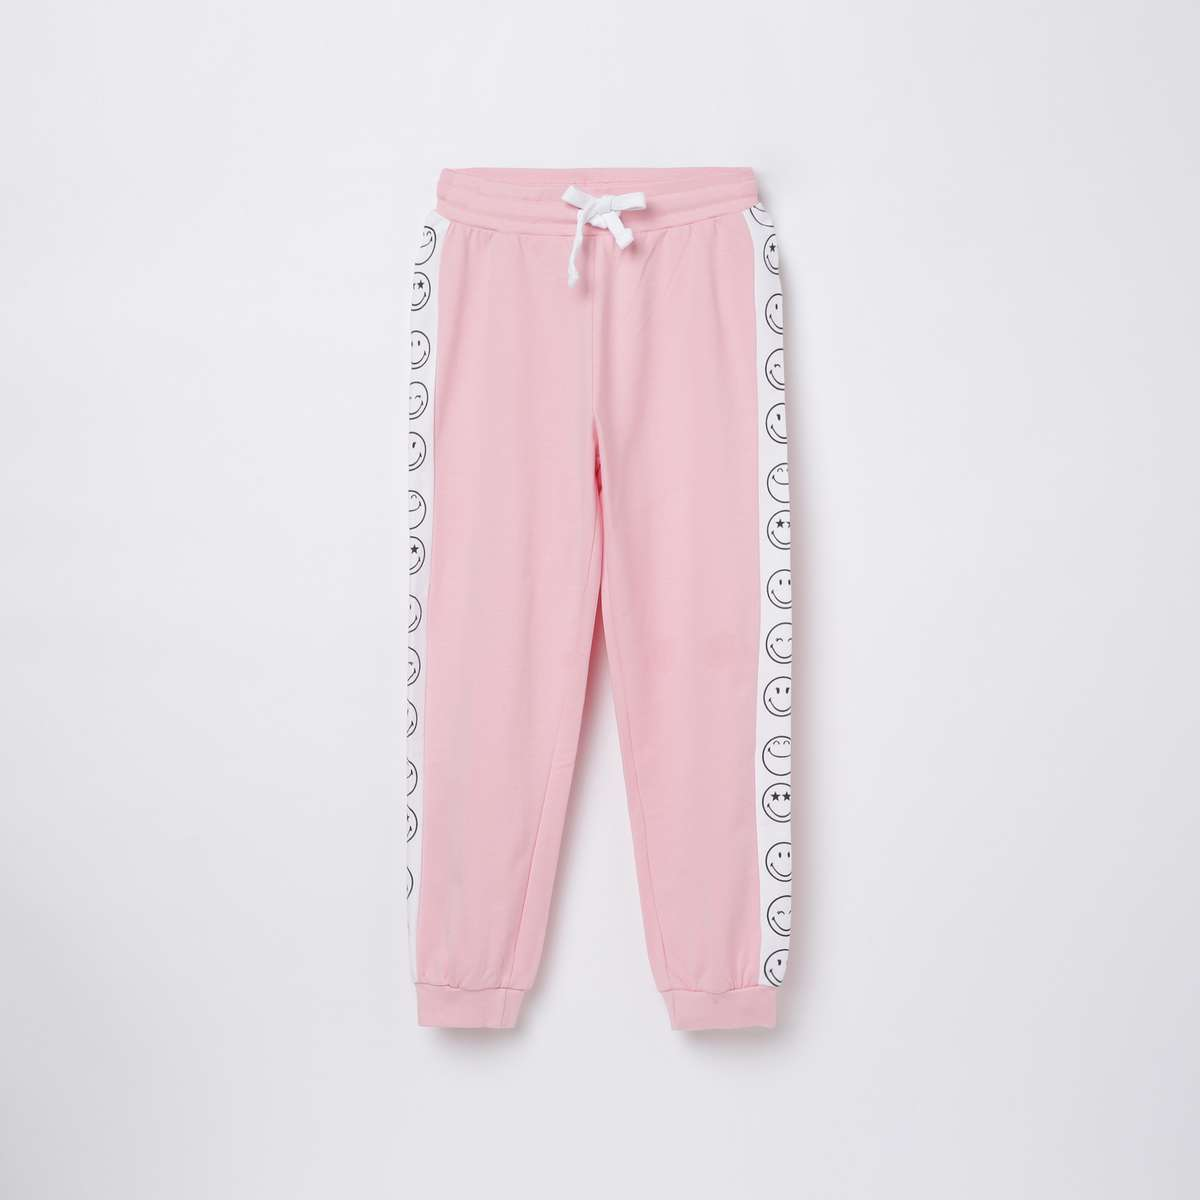 2.FAME FOREVER KIDS Girls Printed Elasticated Joggers